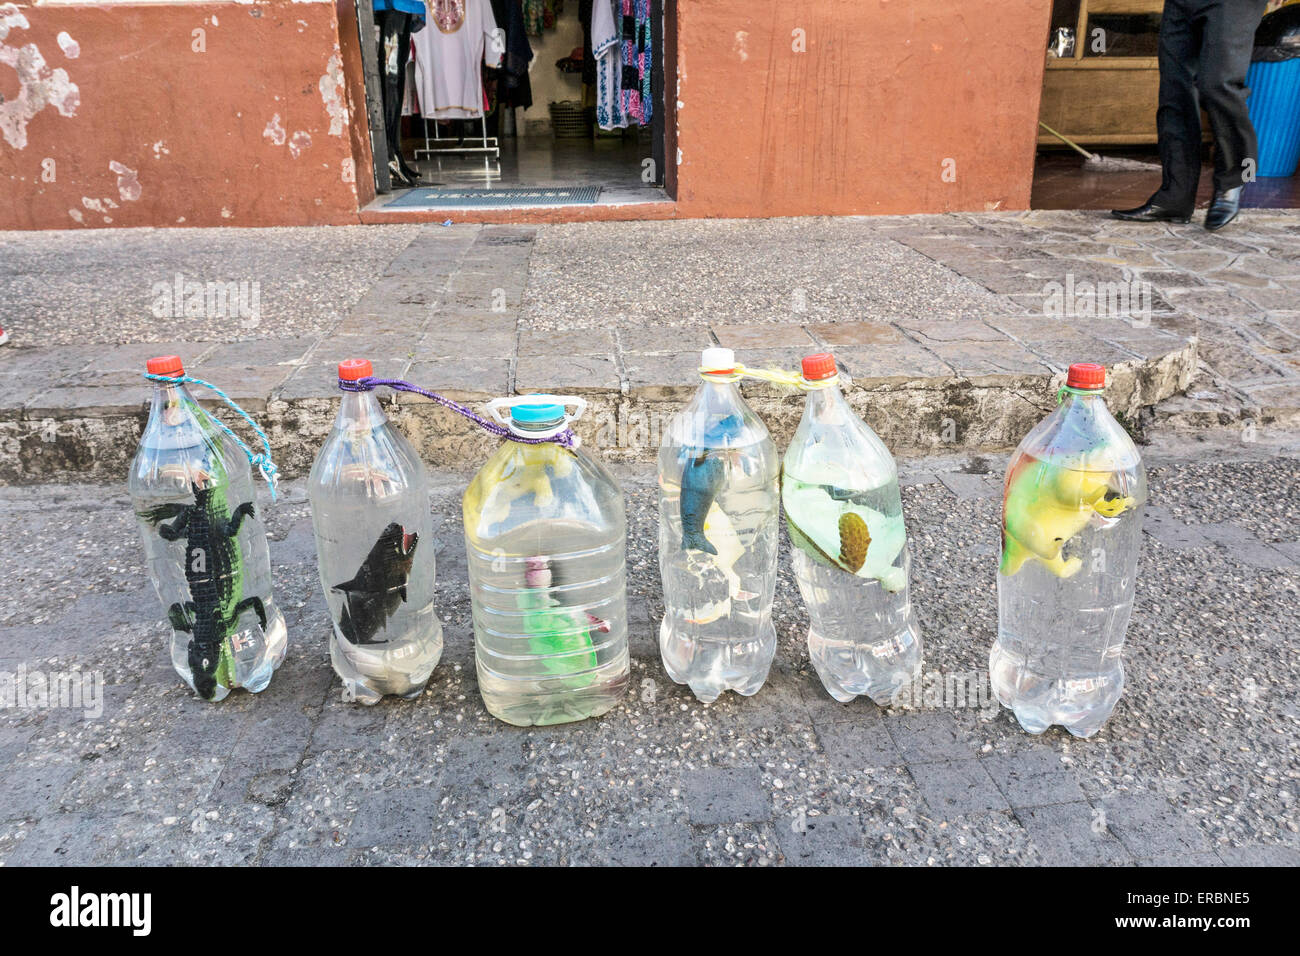 toy miniatures floating in cheap recycled bottles are fun faux aquatic specimens for sale in street San Cristobal - Stock Image